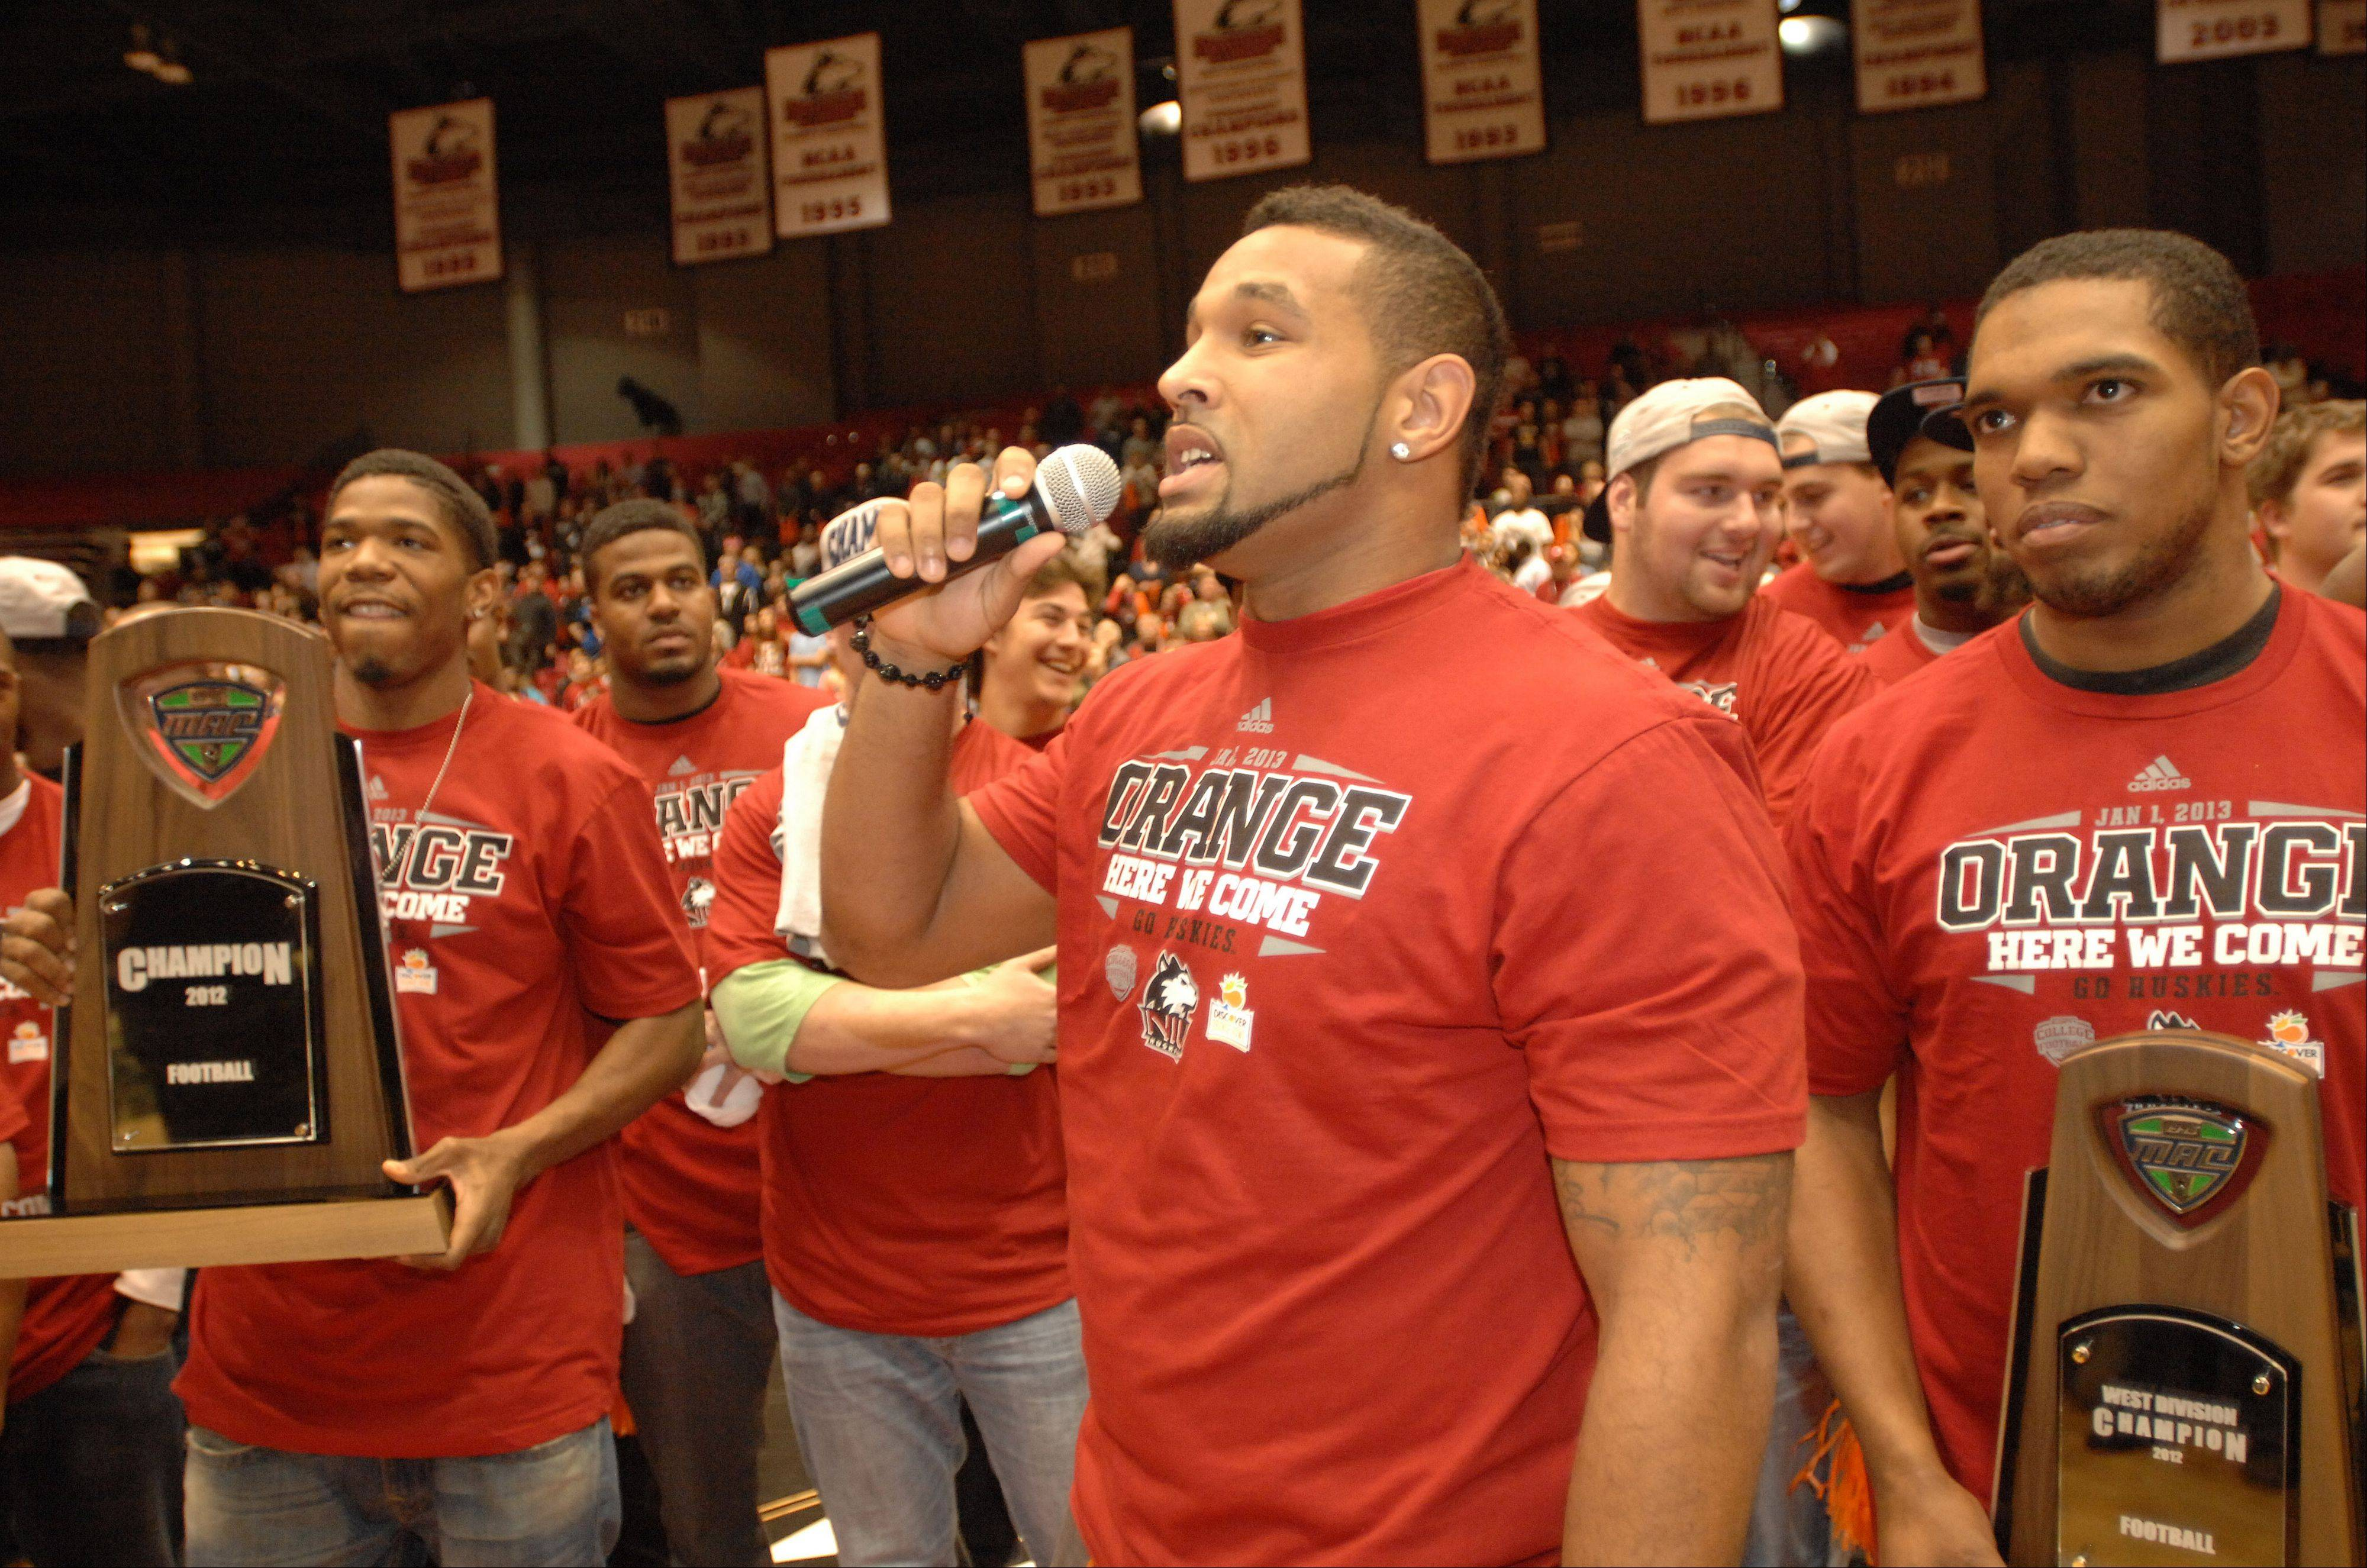 NIU defensive end Sean Progar pumps up the crowd during an Orange Bowl rally Wednesday on campus in DeKalb.